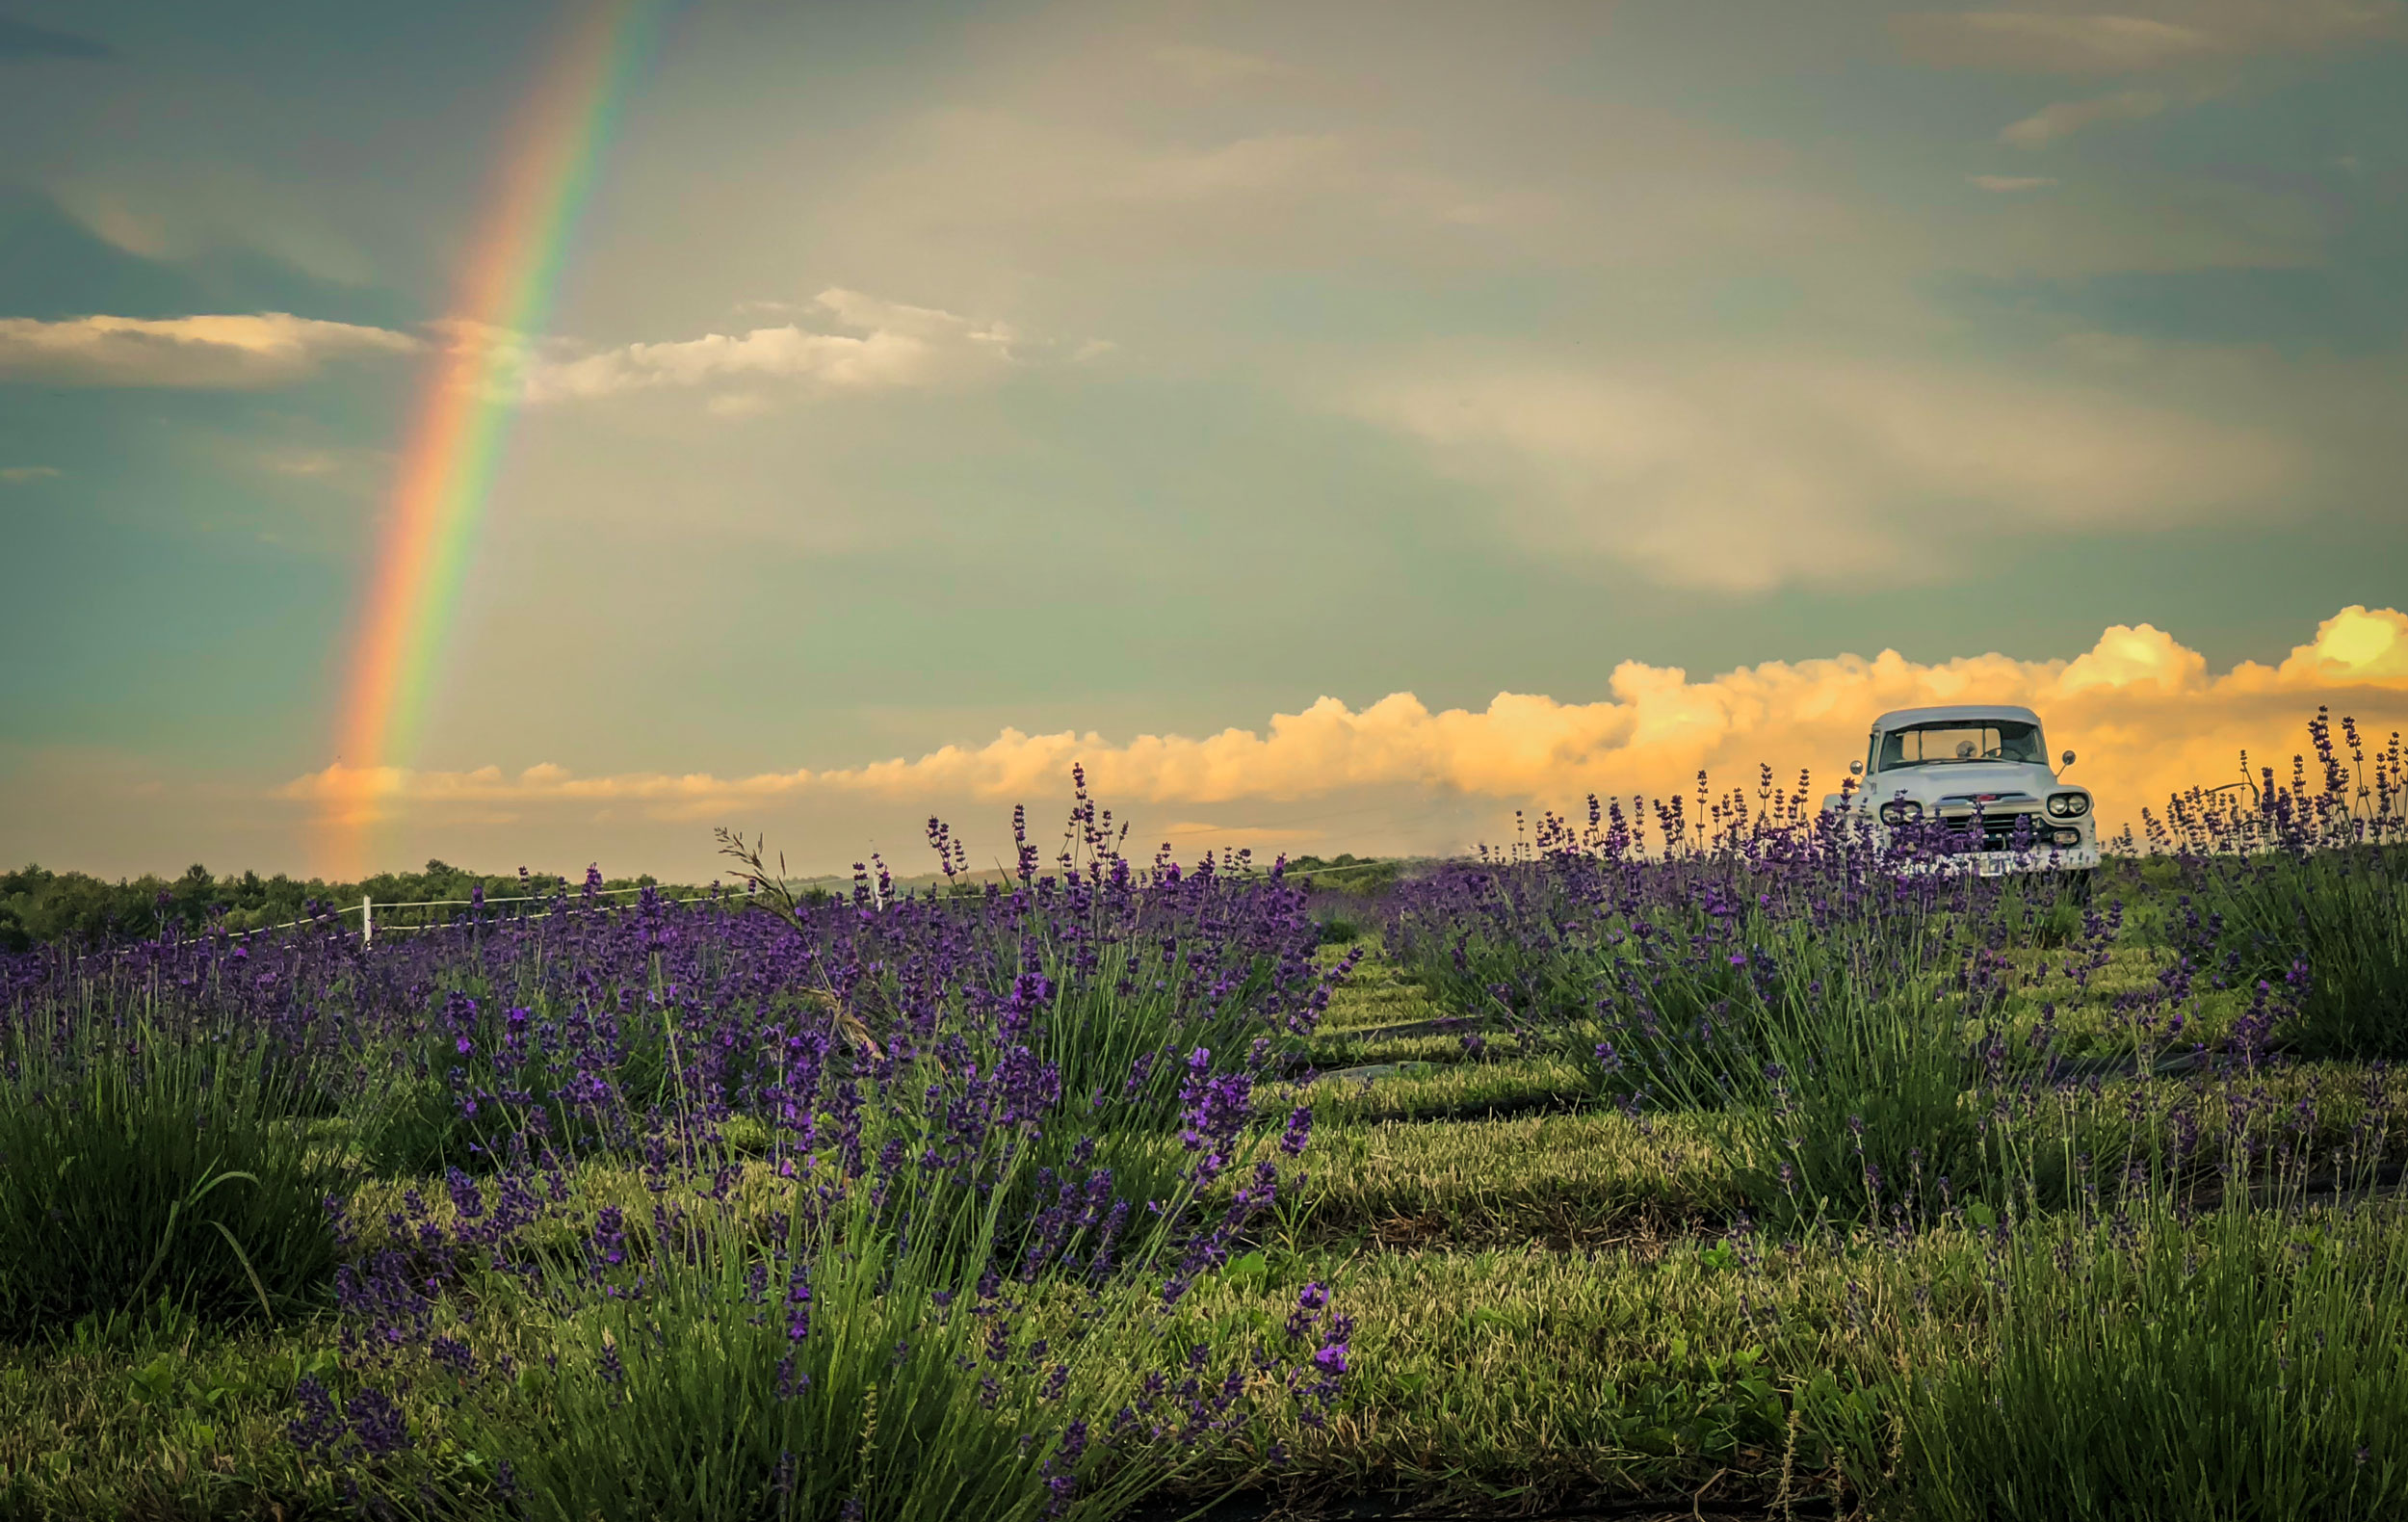 First Responders & Health Care Workers Lavender Farm Experience